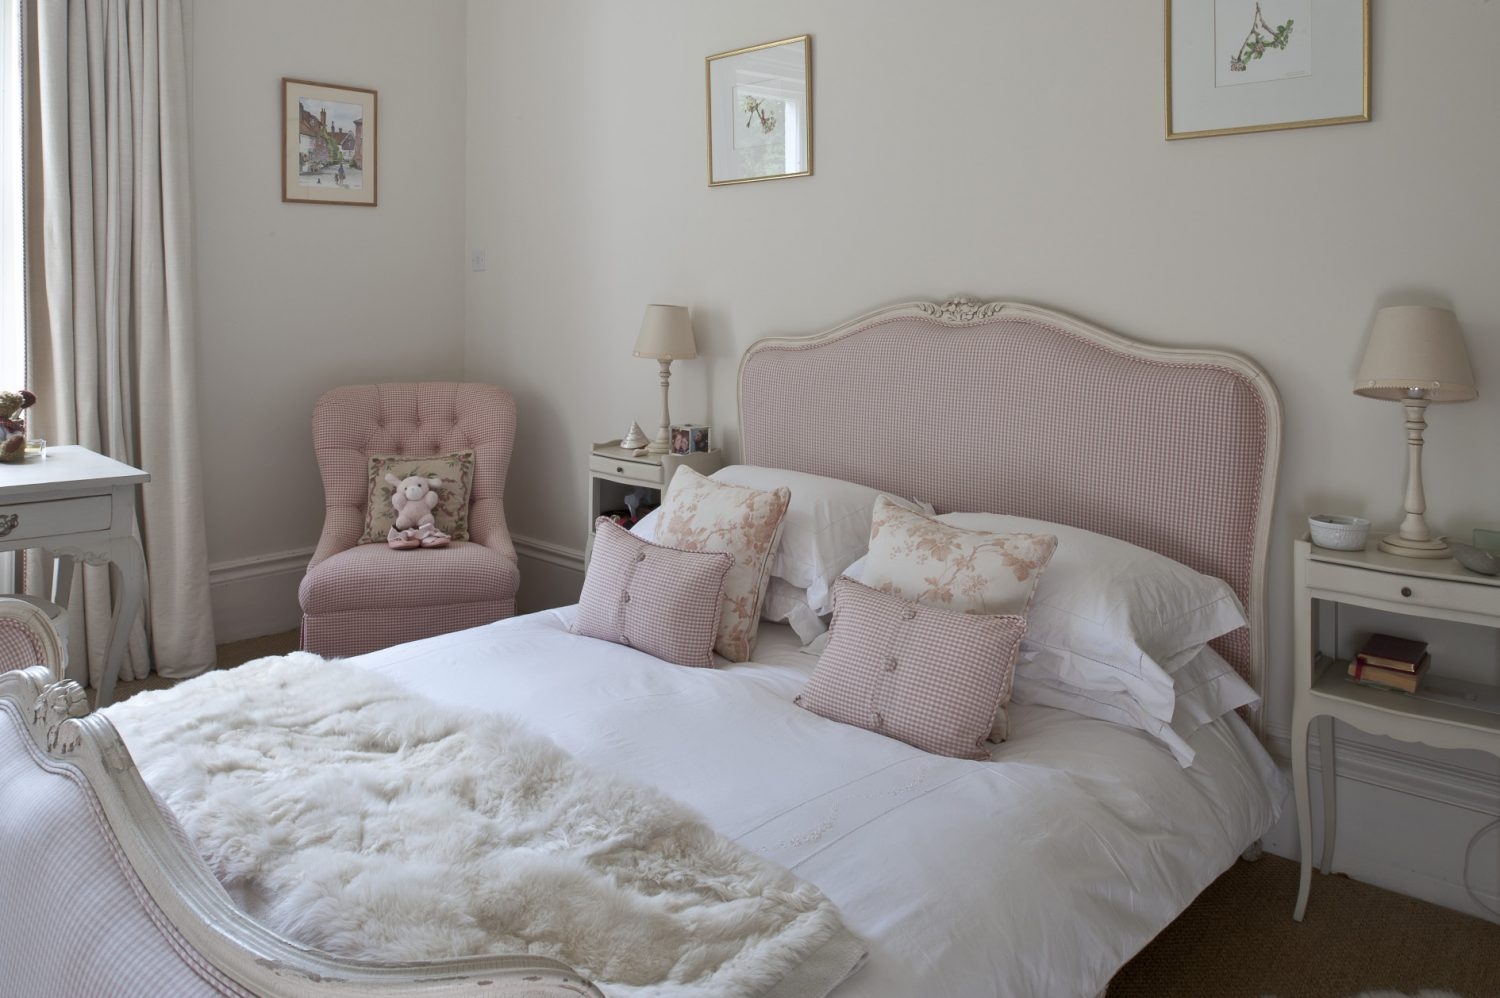 This French bed is from 'Tasha Interiors in Lamberhurst